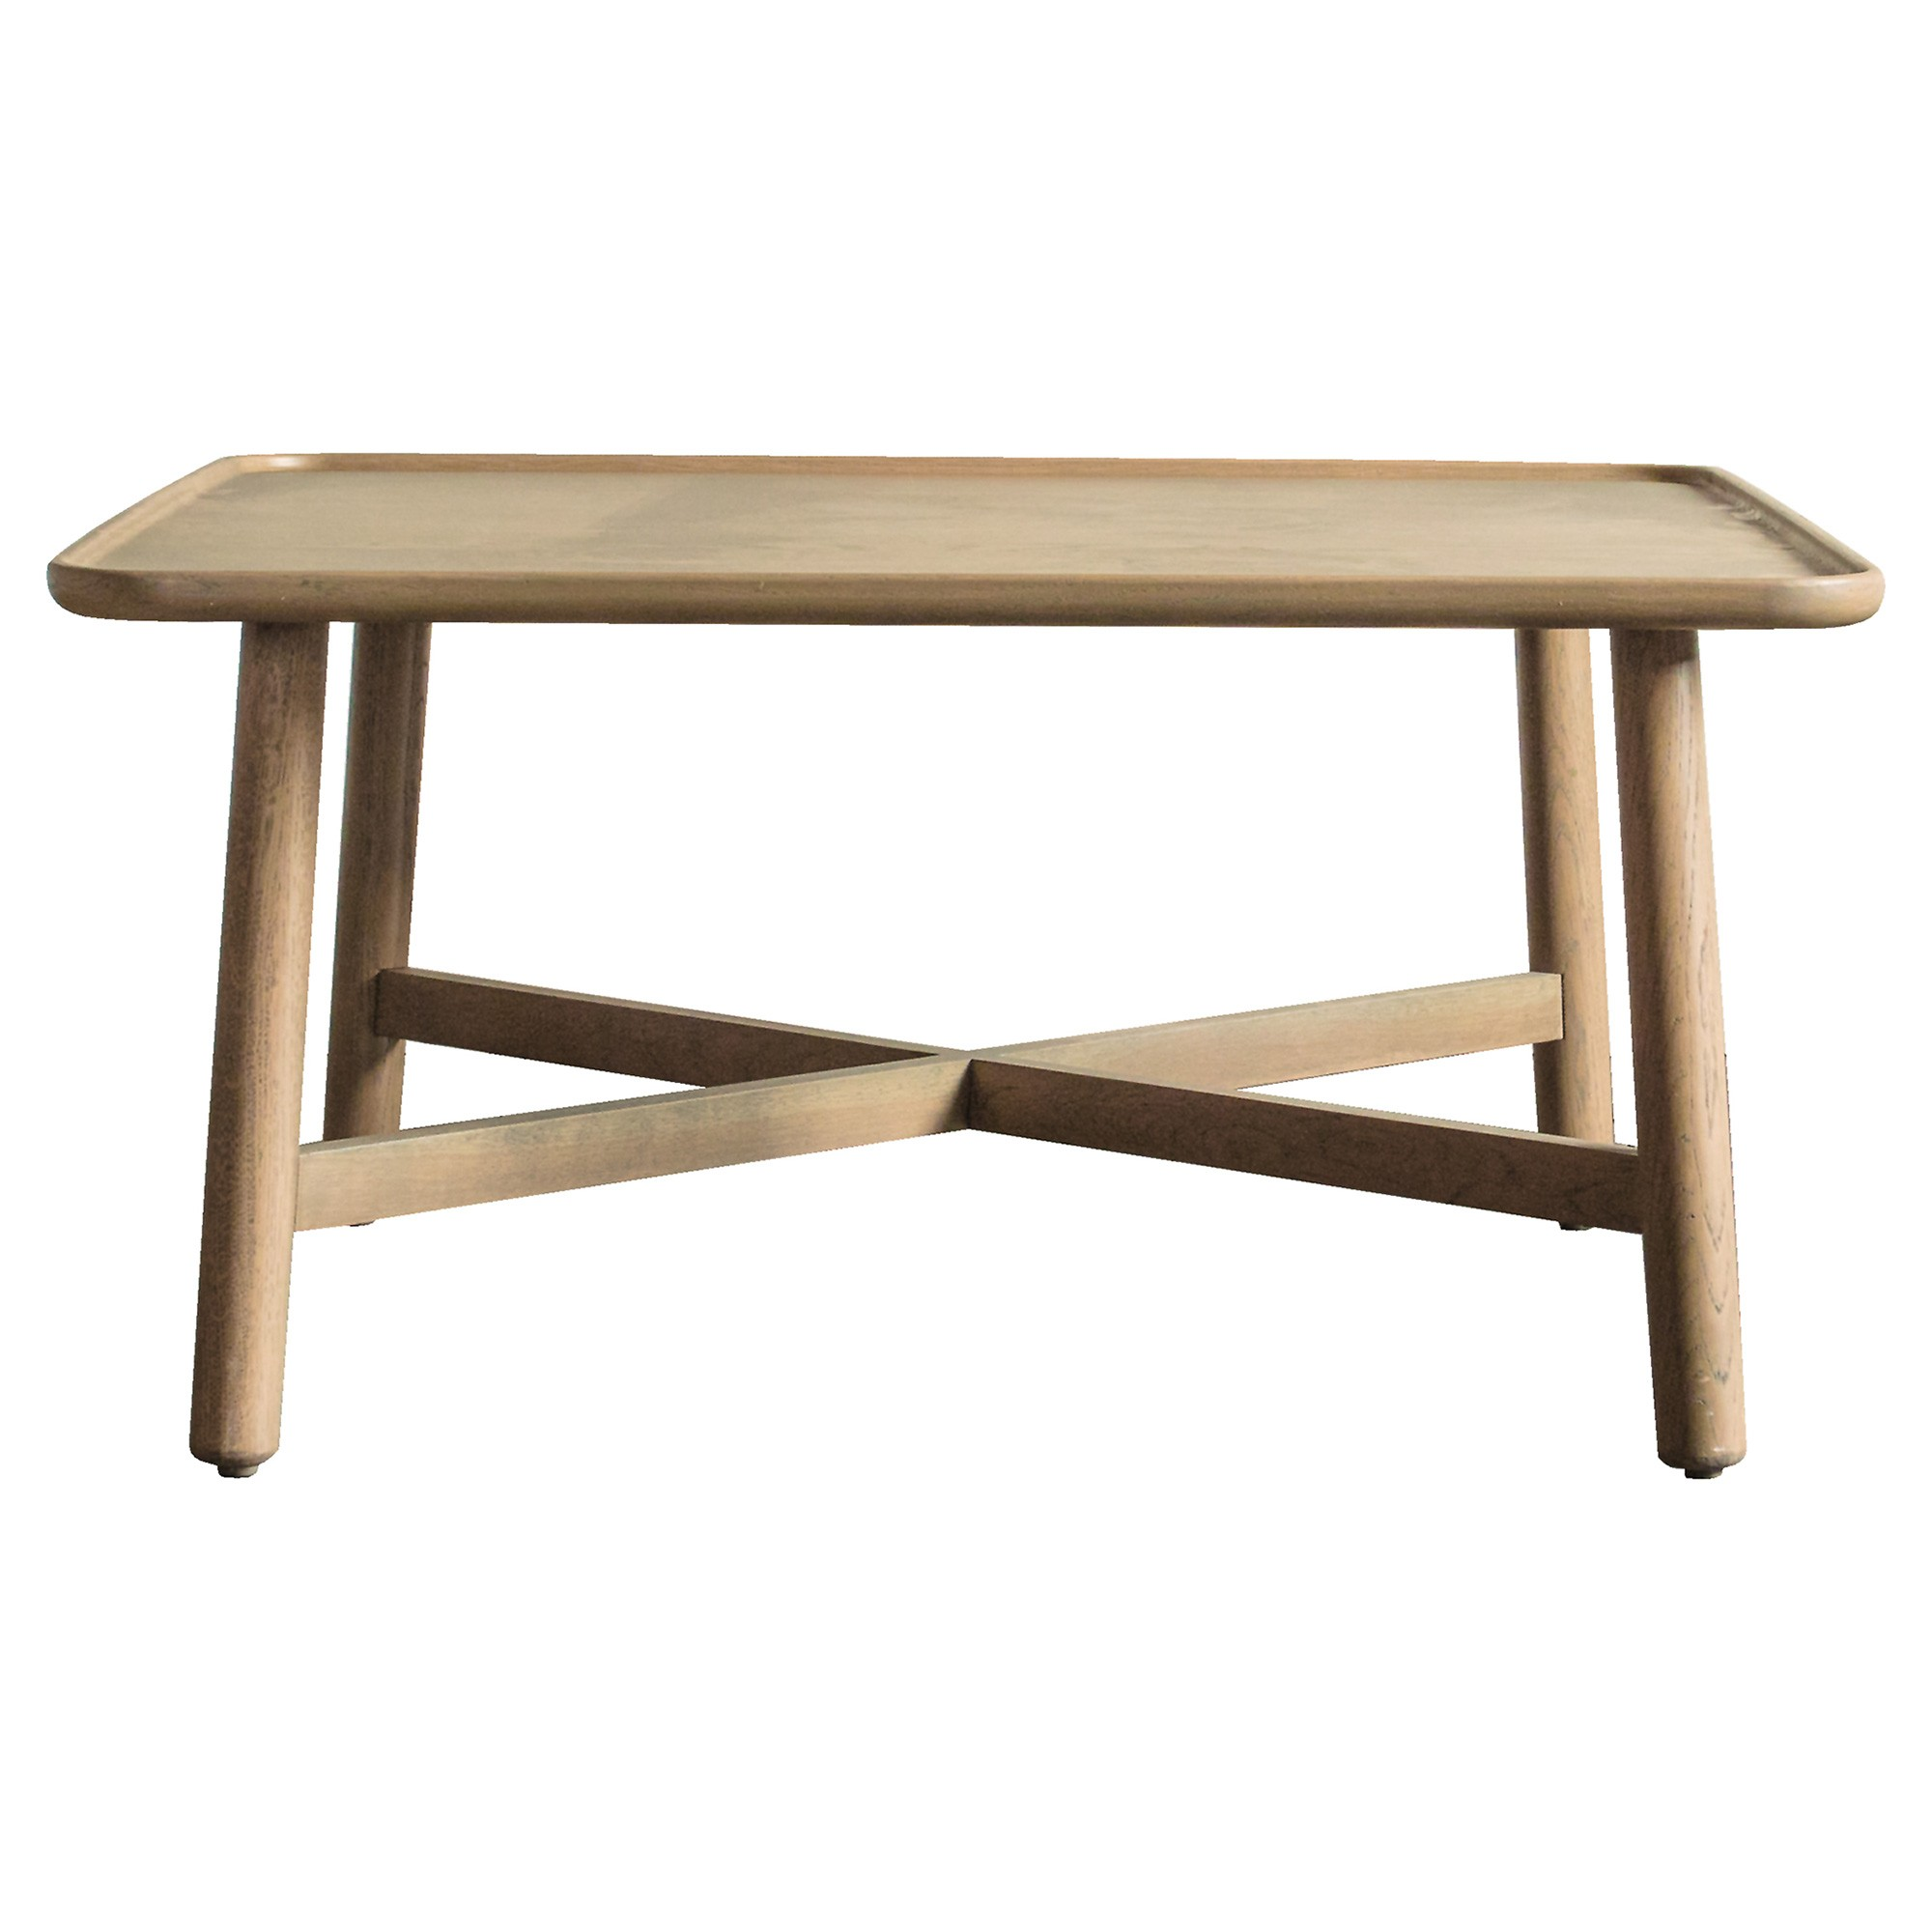 Kingham European Oak Timber Square Coffee Table, 80cm